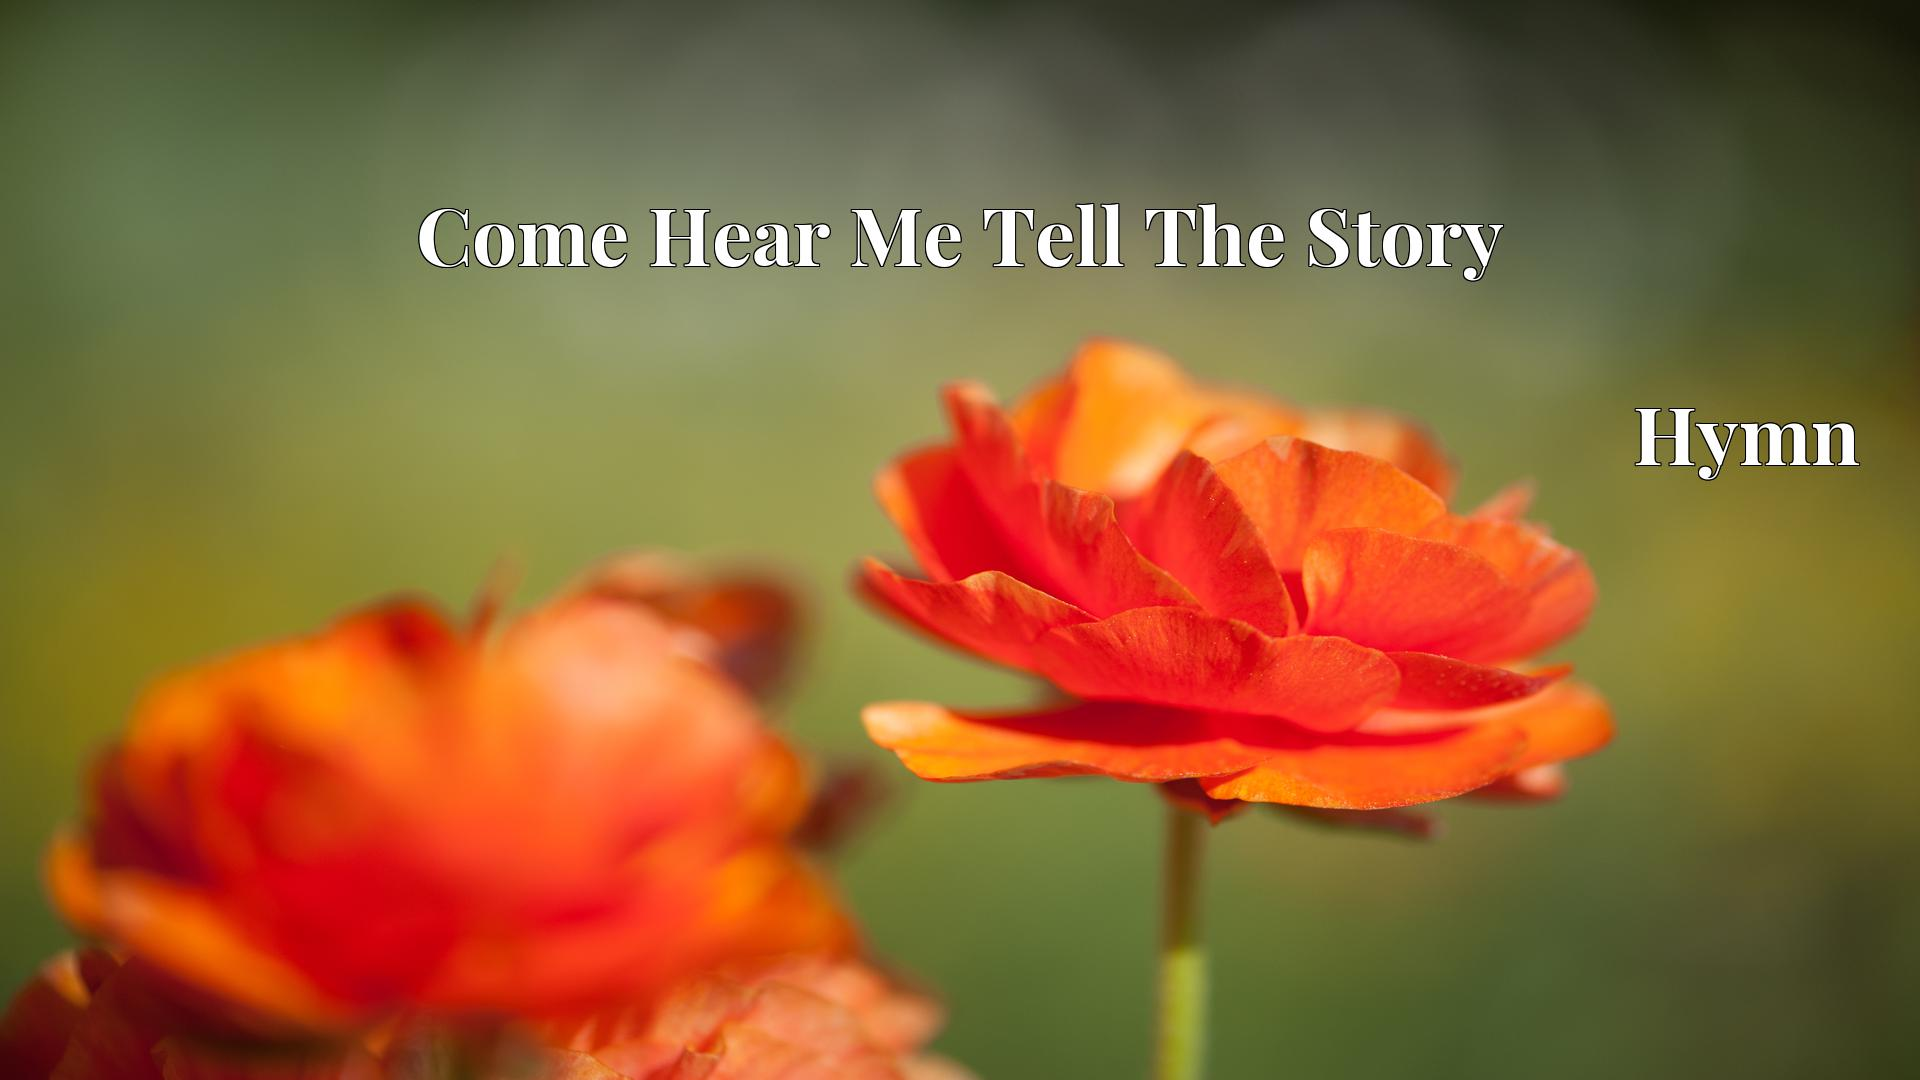 Come Hear Me Tell The Story - Hymn